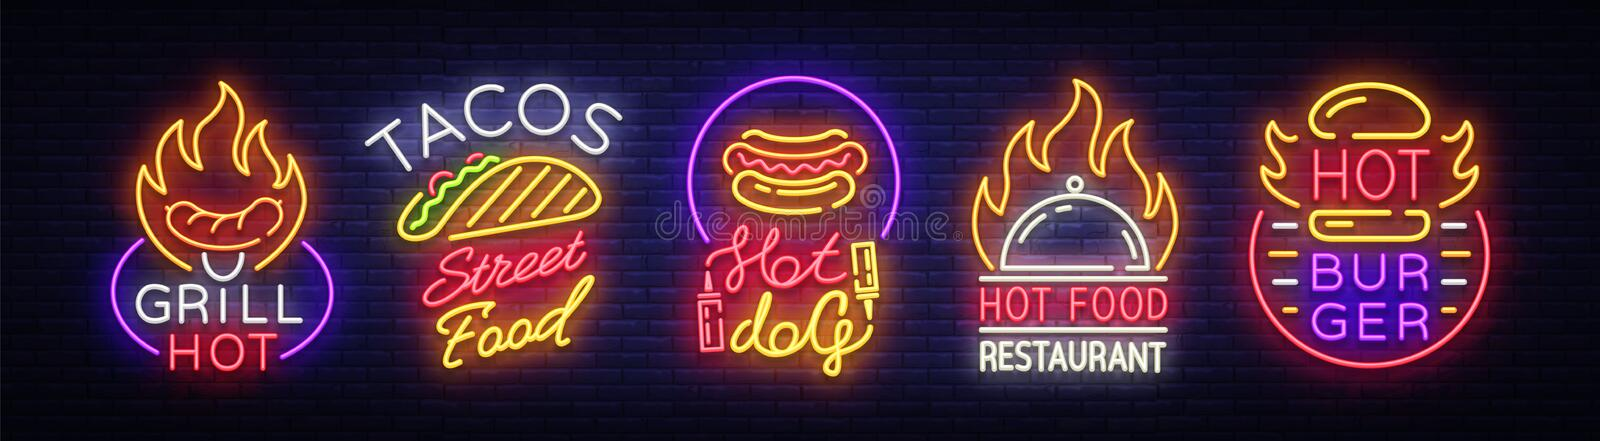 Set Fast Food Logos. Collection neon signs, Street Food Hot Grill, Tacos, Hot Dog, Burger cafe, Restaurant. Design vector illustration